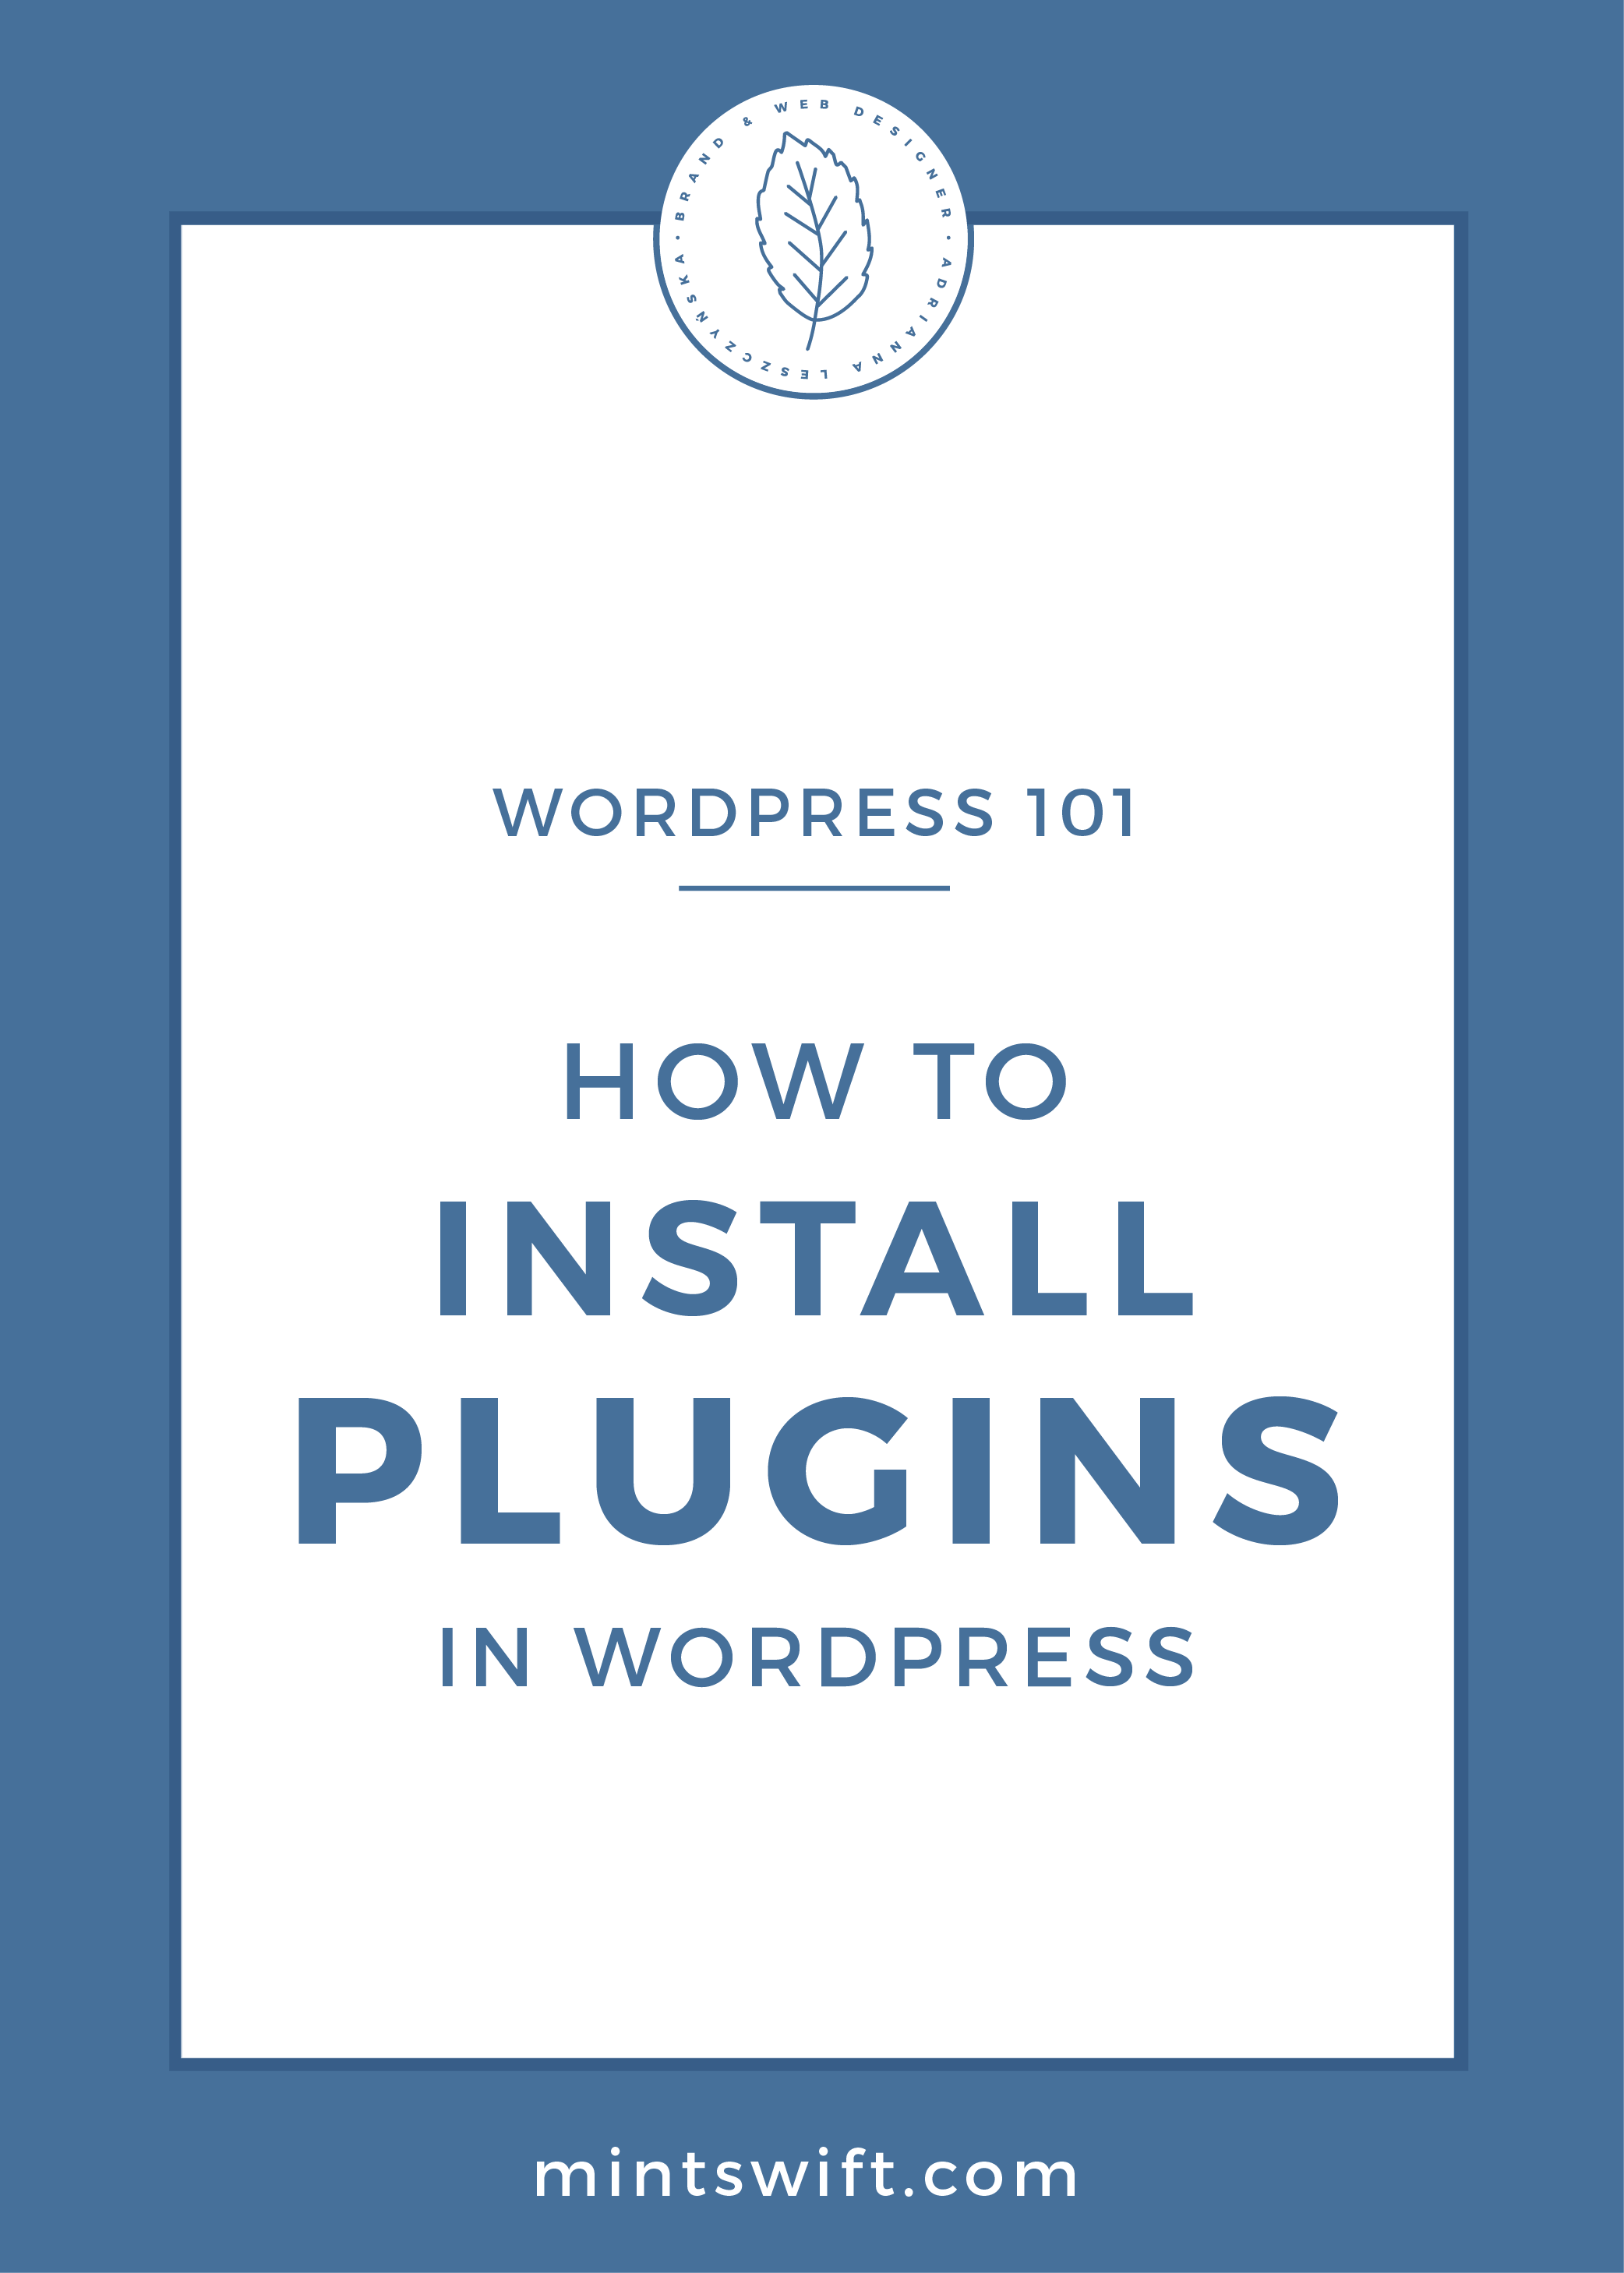 How to Install Plugins in WordPress by MintSwift